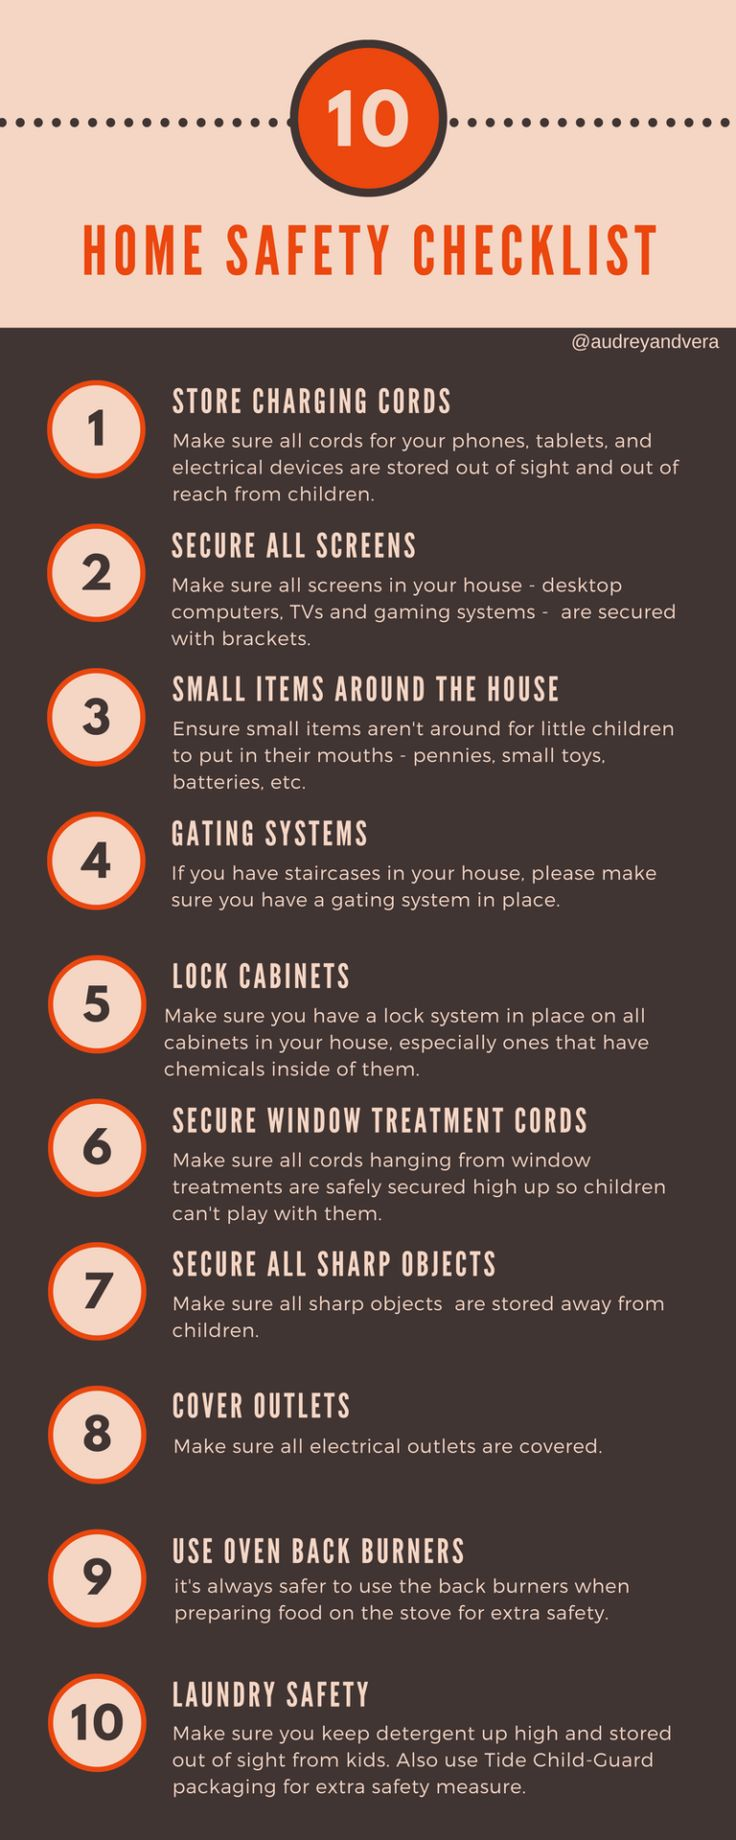 Important home safety checklist for parents and babysitters. Use this checklist to keep your home safe. MomGenerations.com #safety #homesafety #kidssafety #parenting #safe #home (sp)